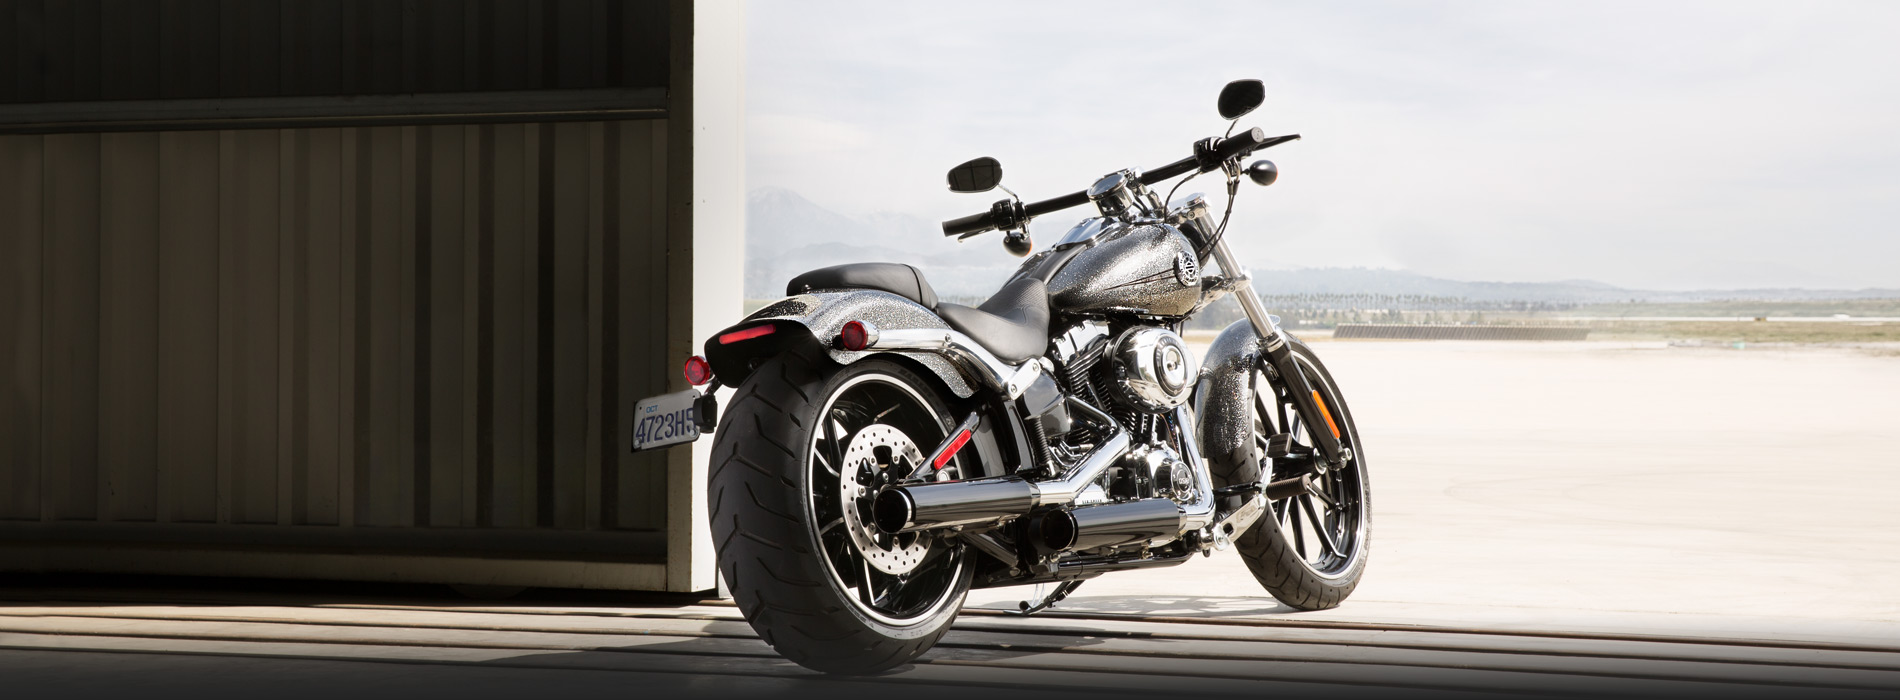 Harley-Davidson Softail Breakout Special Edition 2014 #5